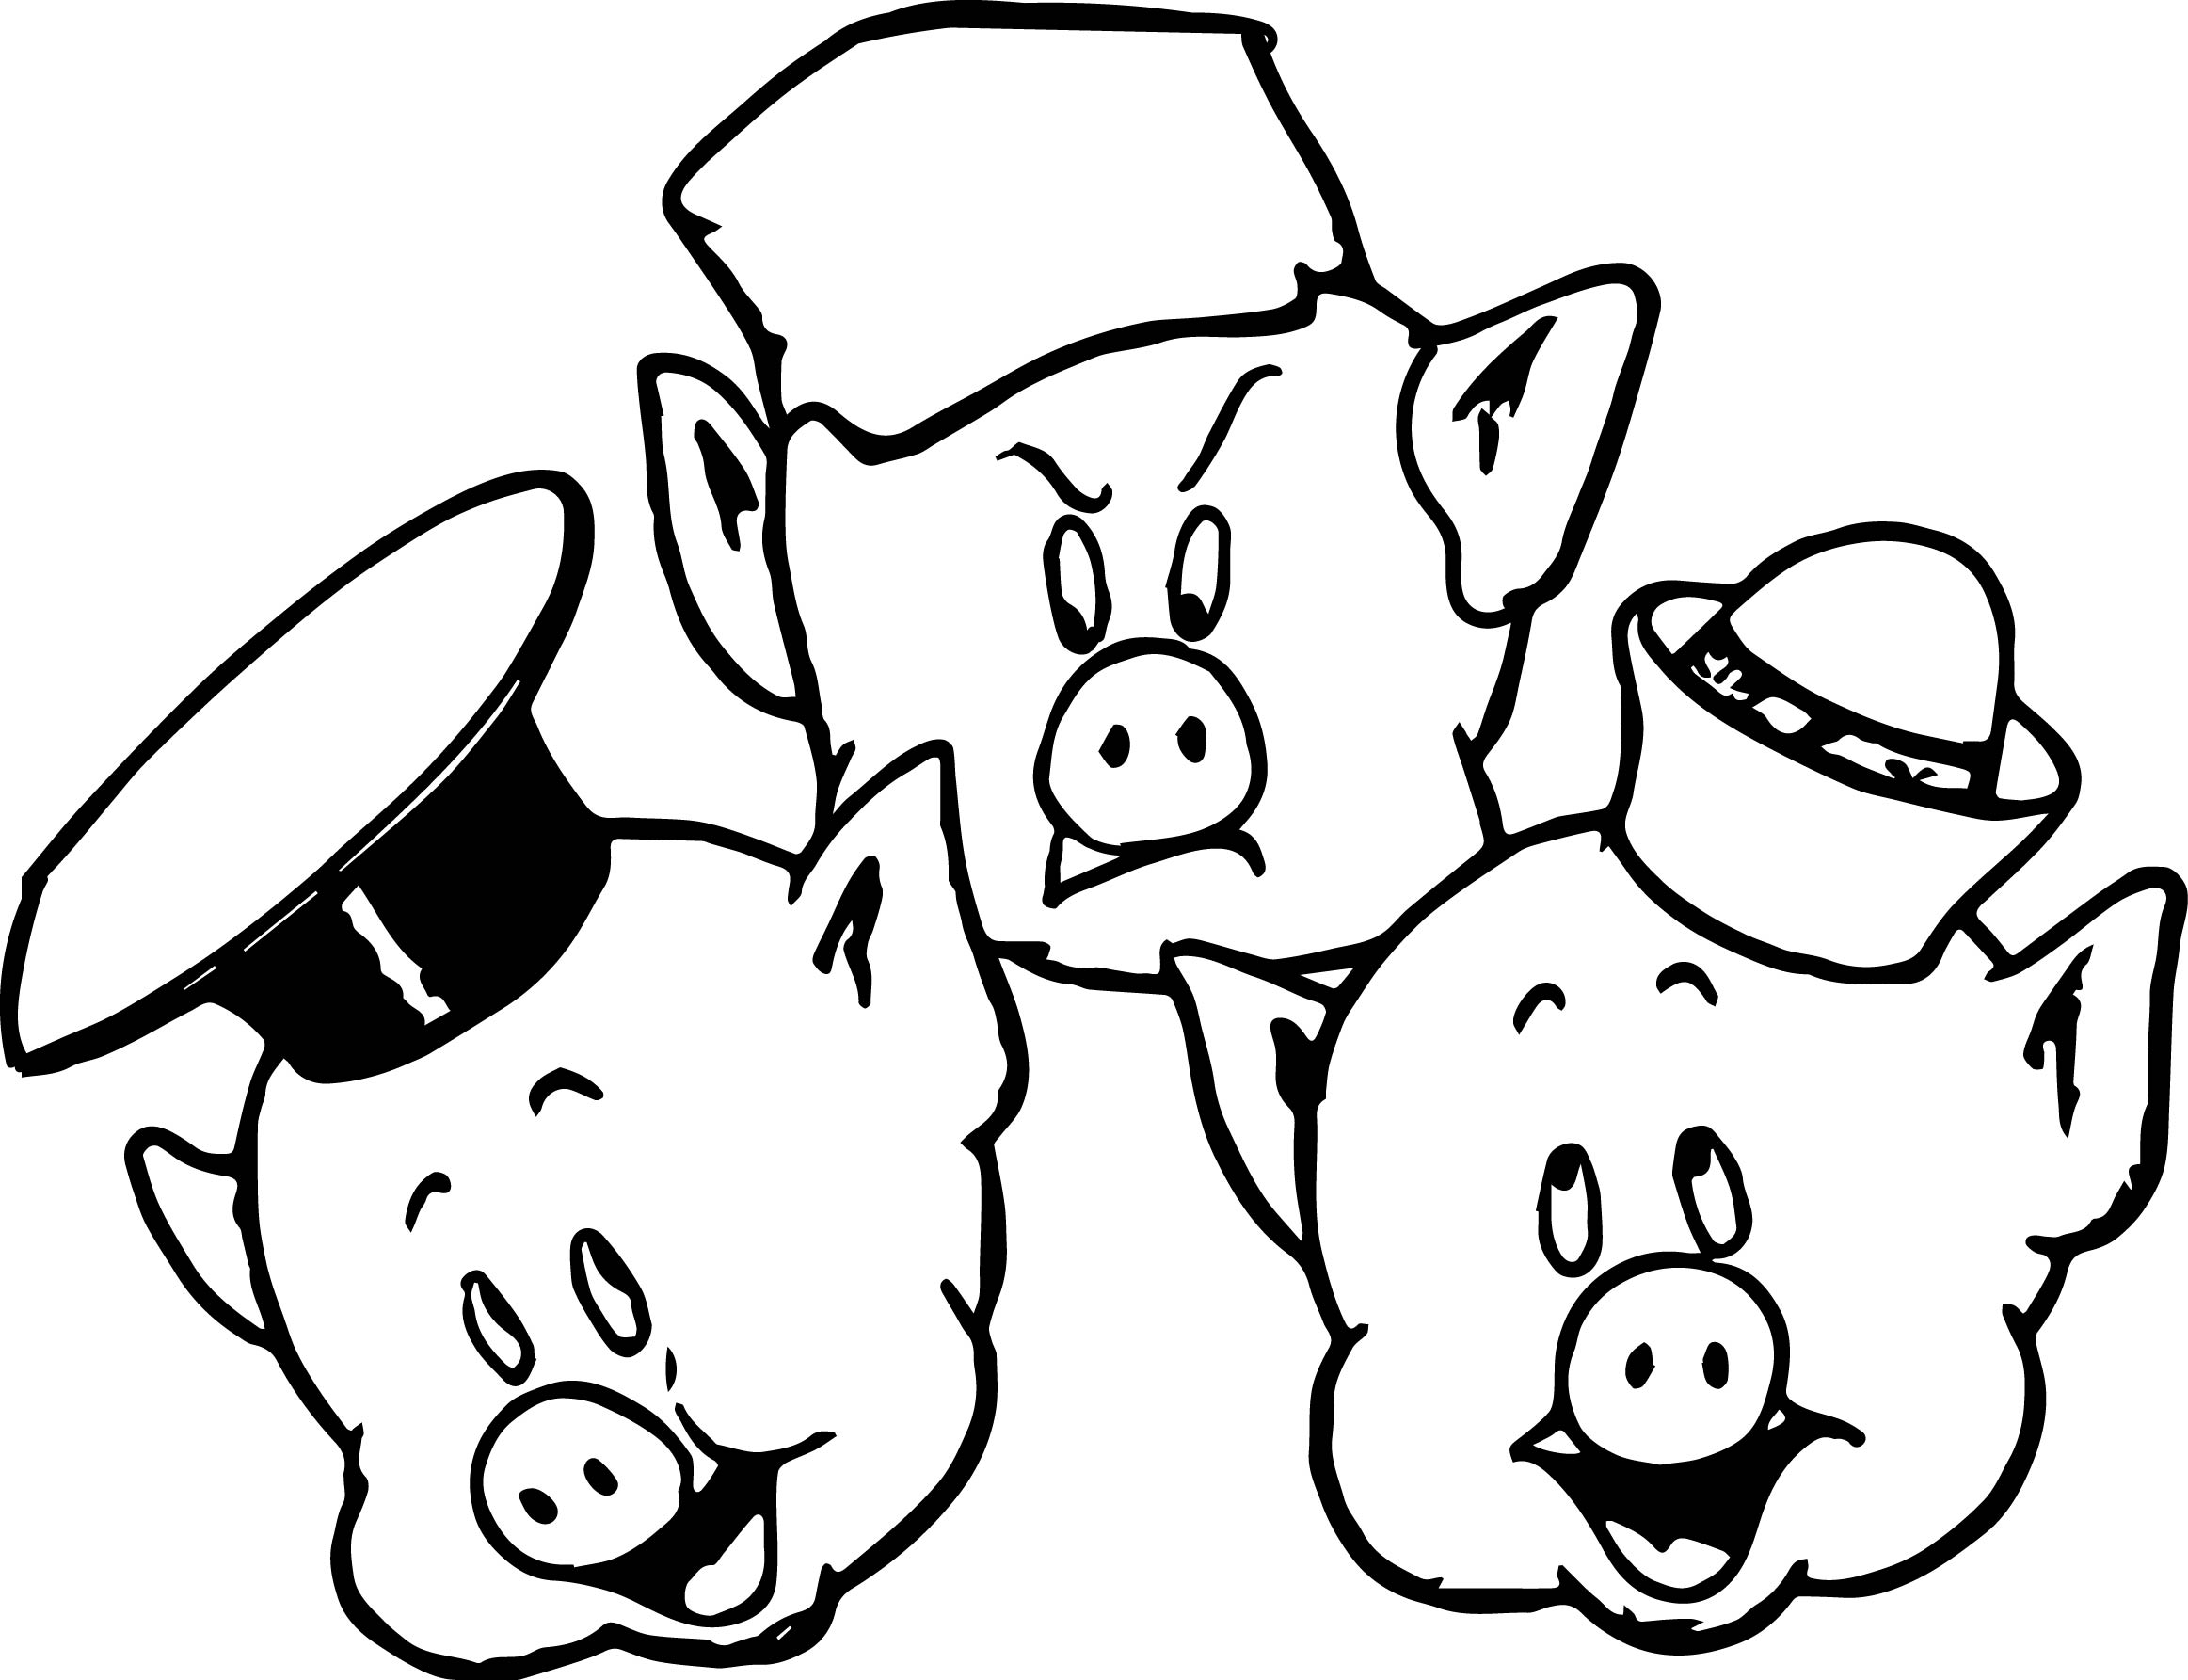 pig coloring page - 3 little pigs face coloring page